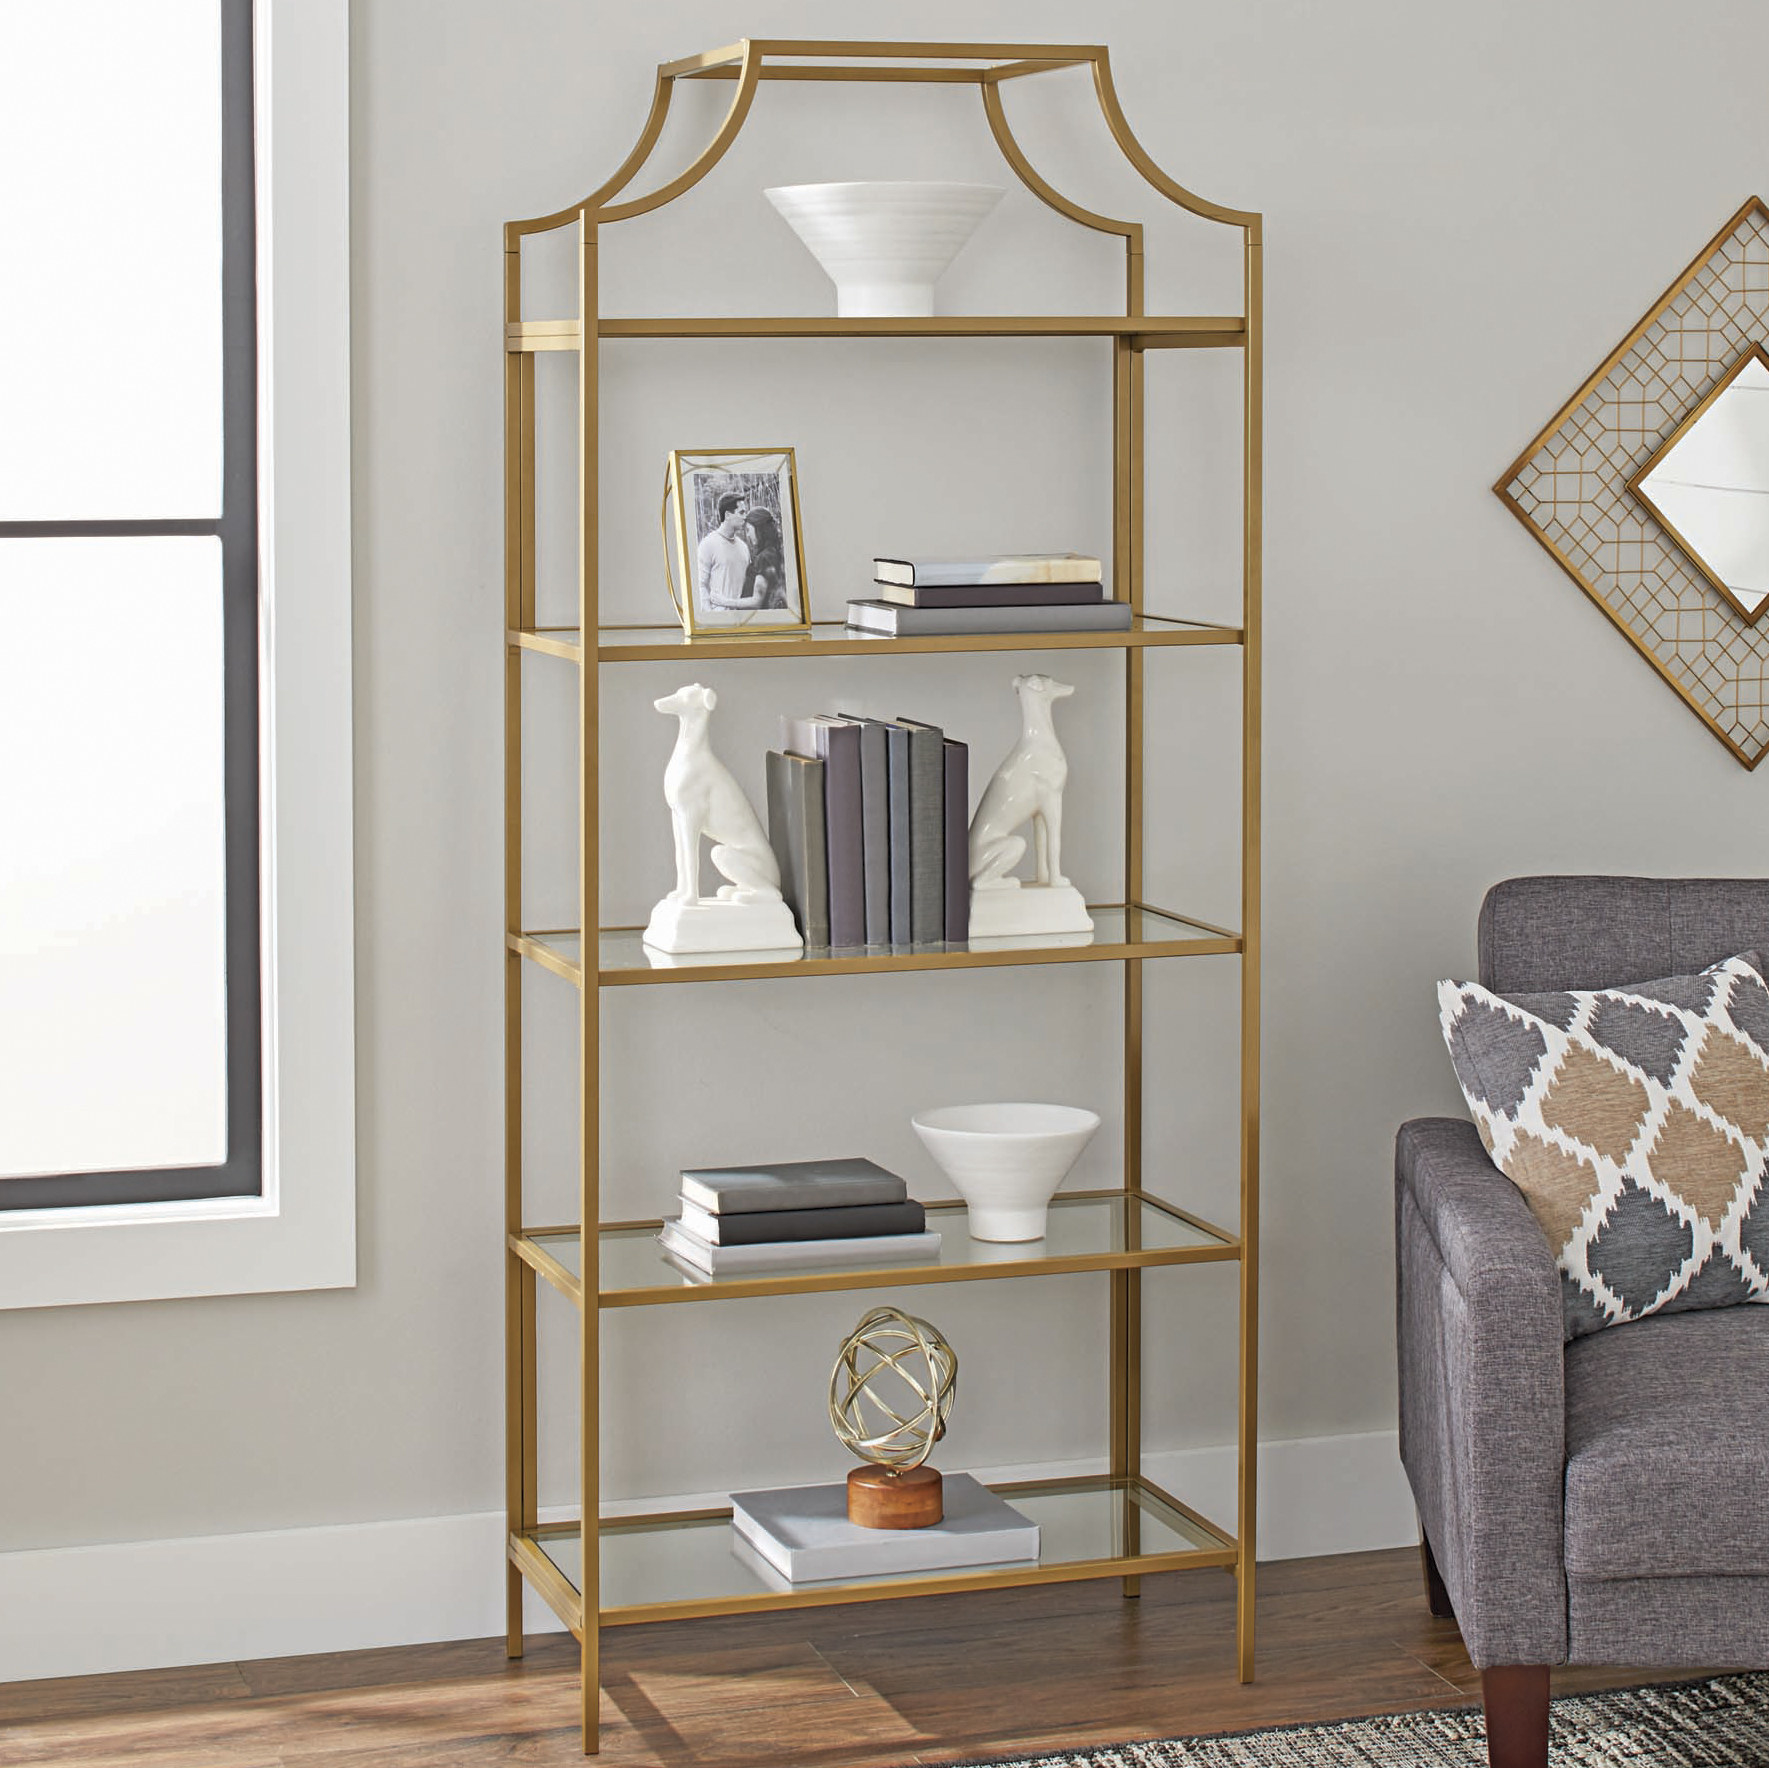 A gold-framed bookcase with five glass shelves